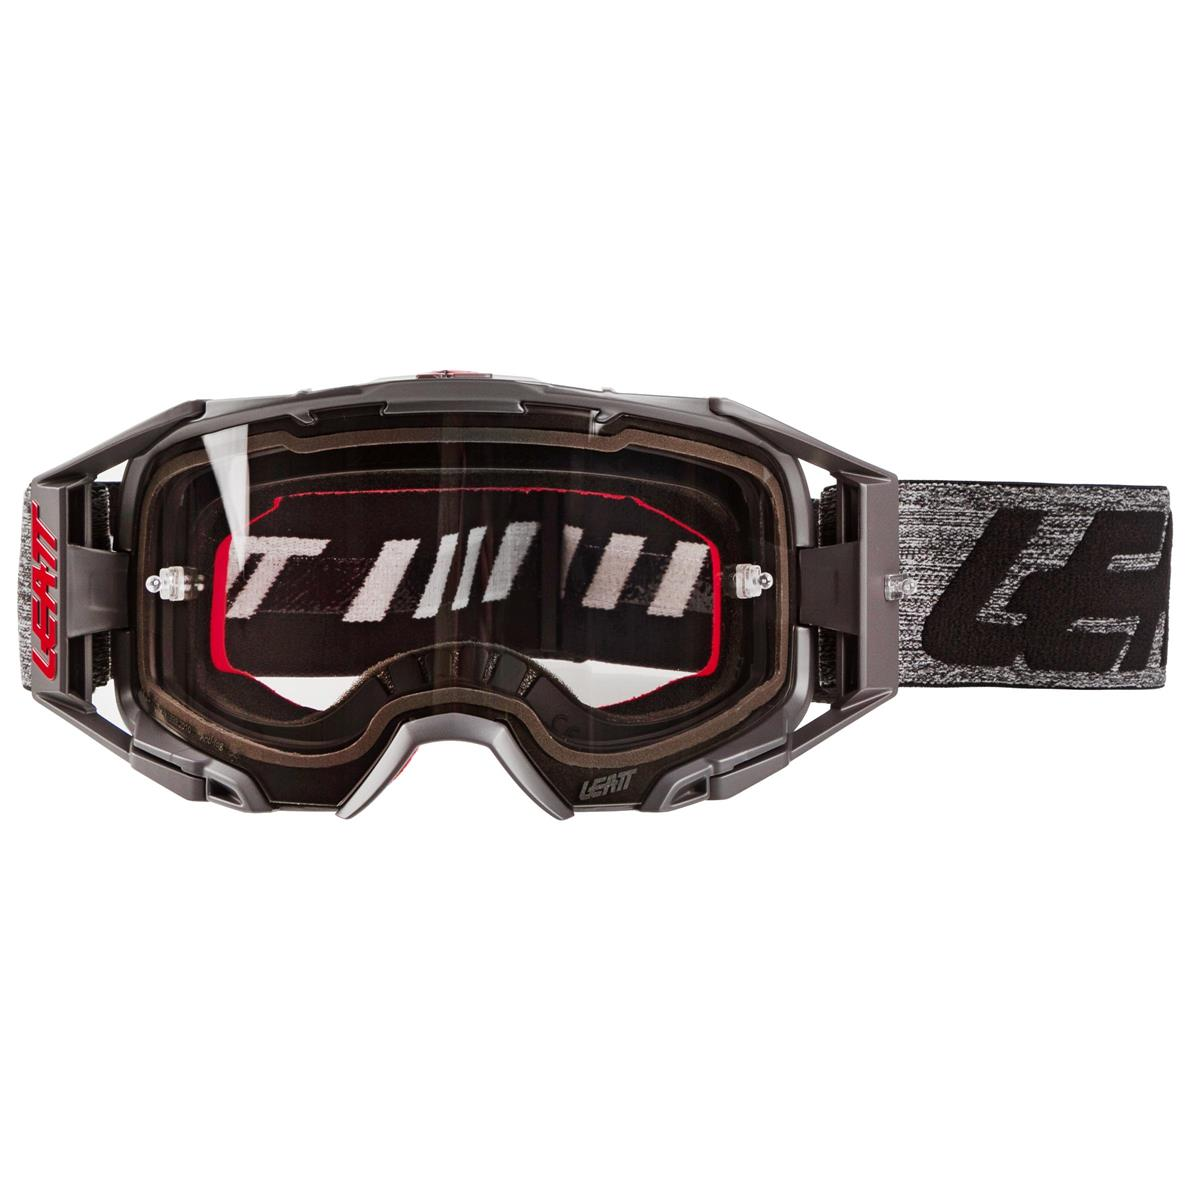 Details about  /Leatt Velocity 6.5 2019 MX Offroad Goggles Brushed//Gray w//Light Gray Lens